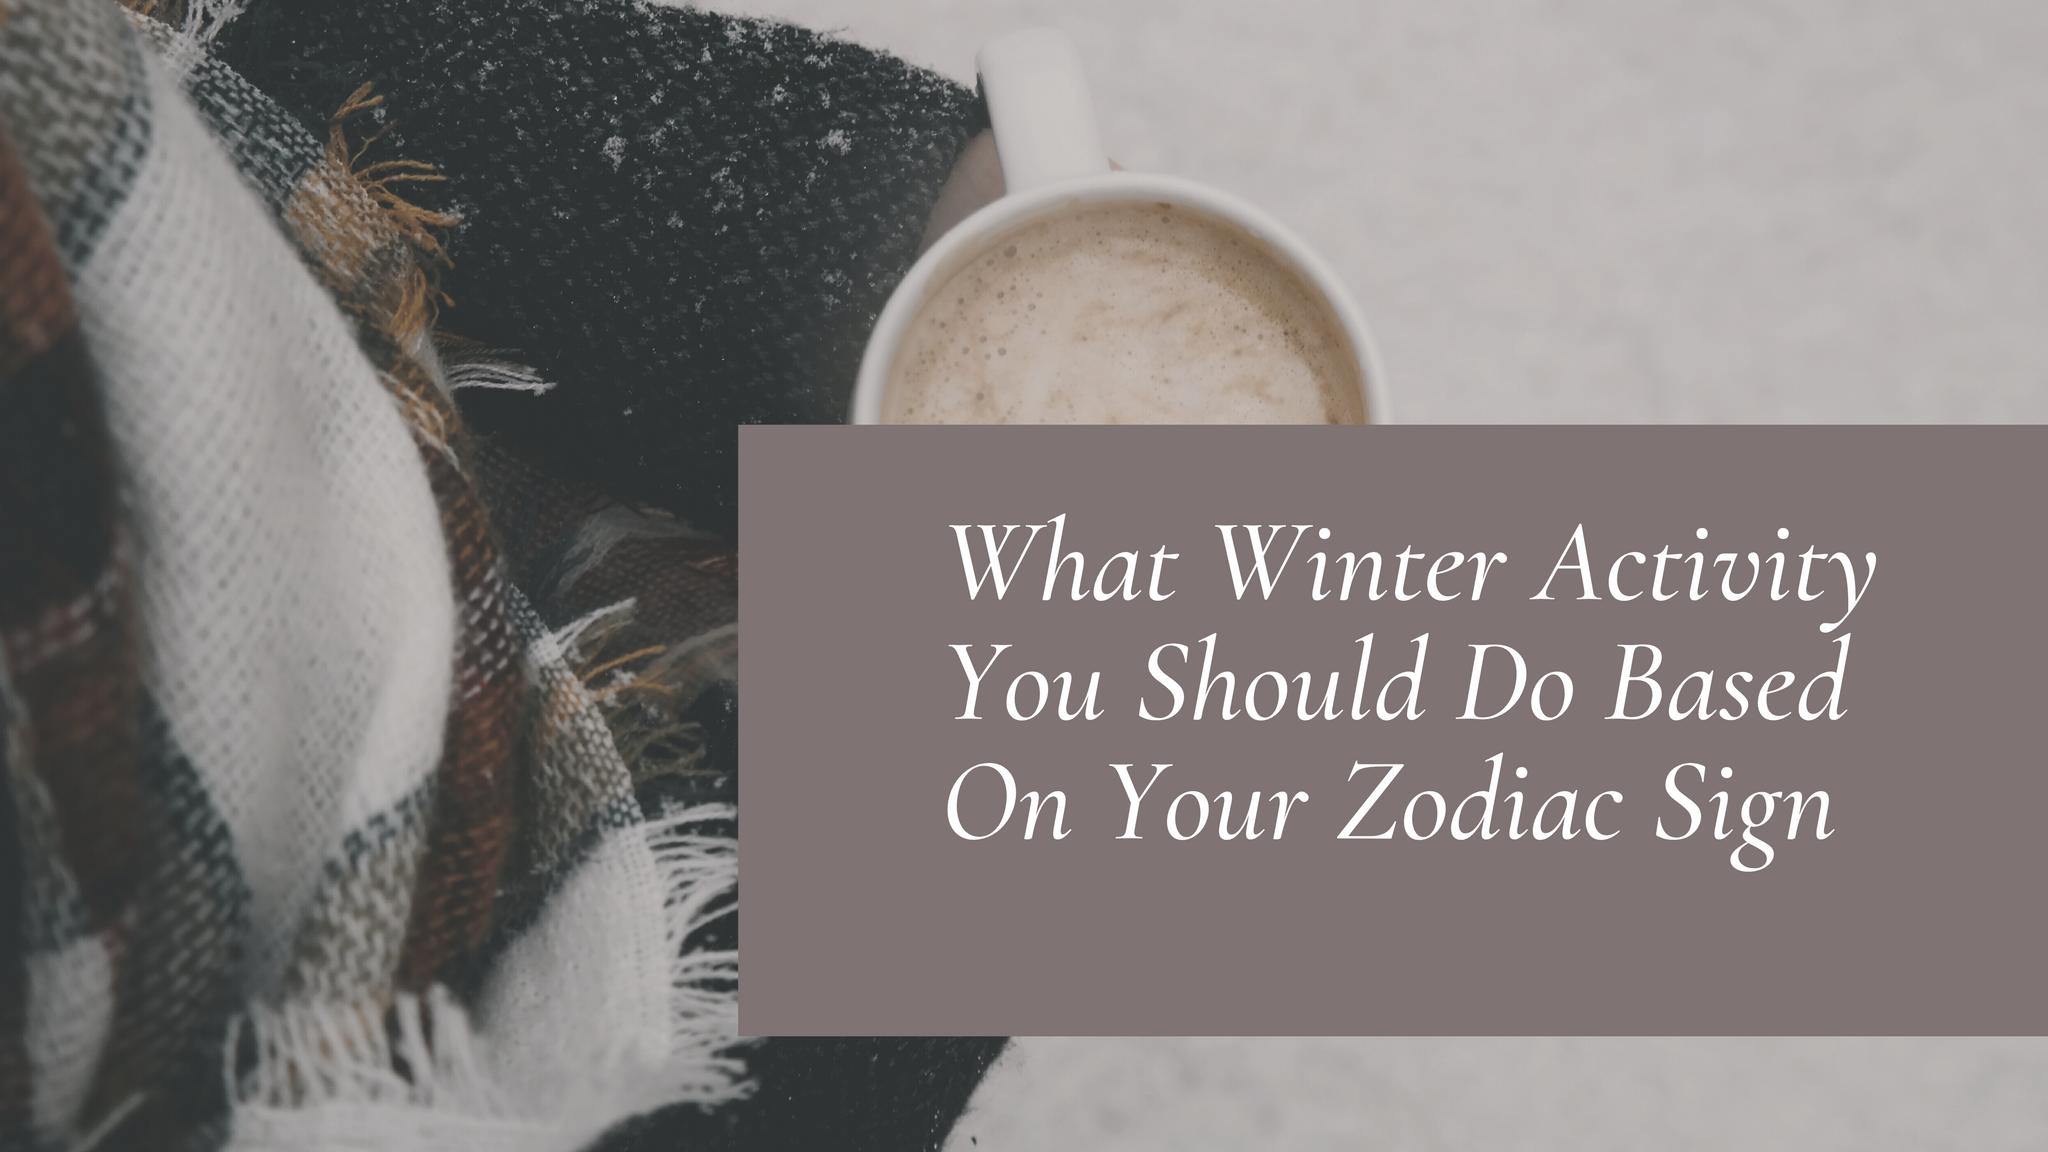 What Winter Activity You Should Do Based on Your Zodiac Sign